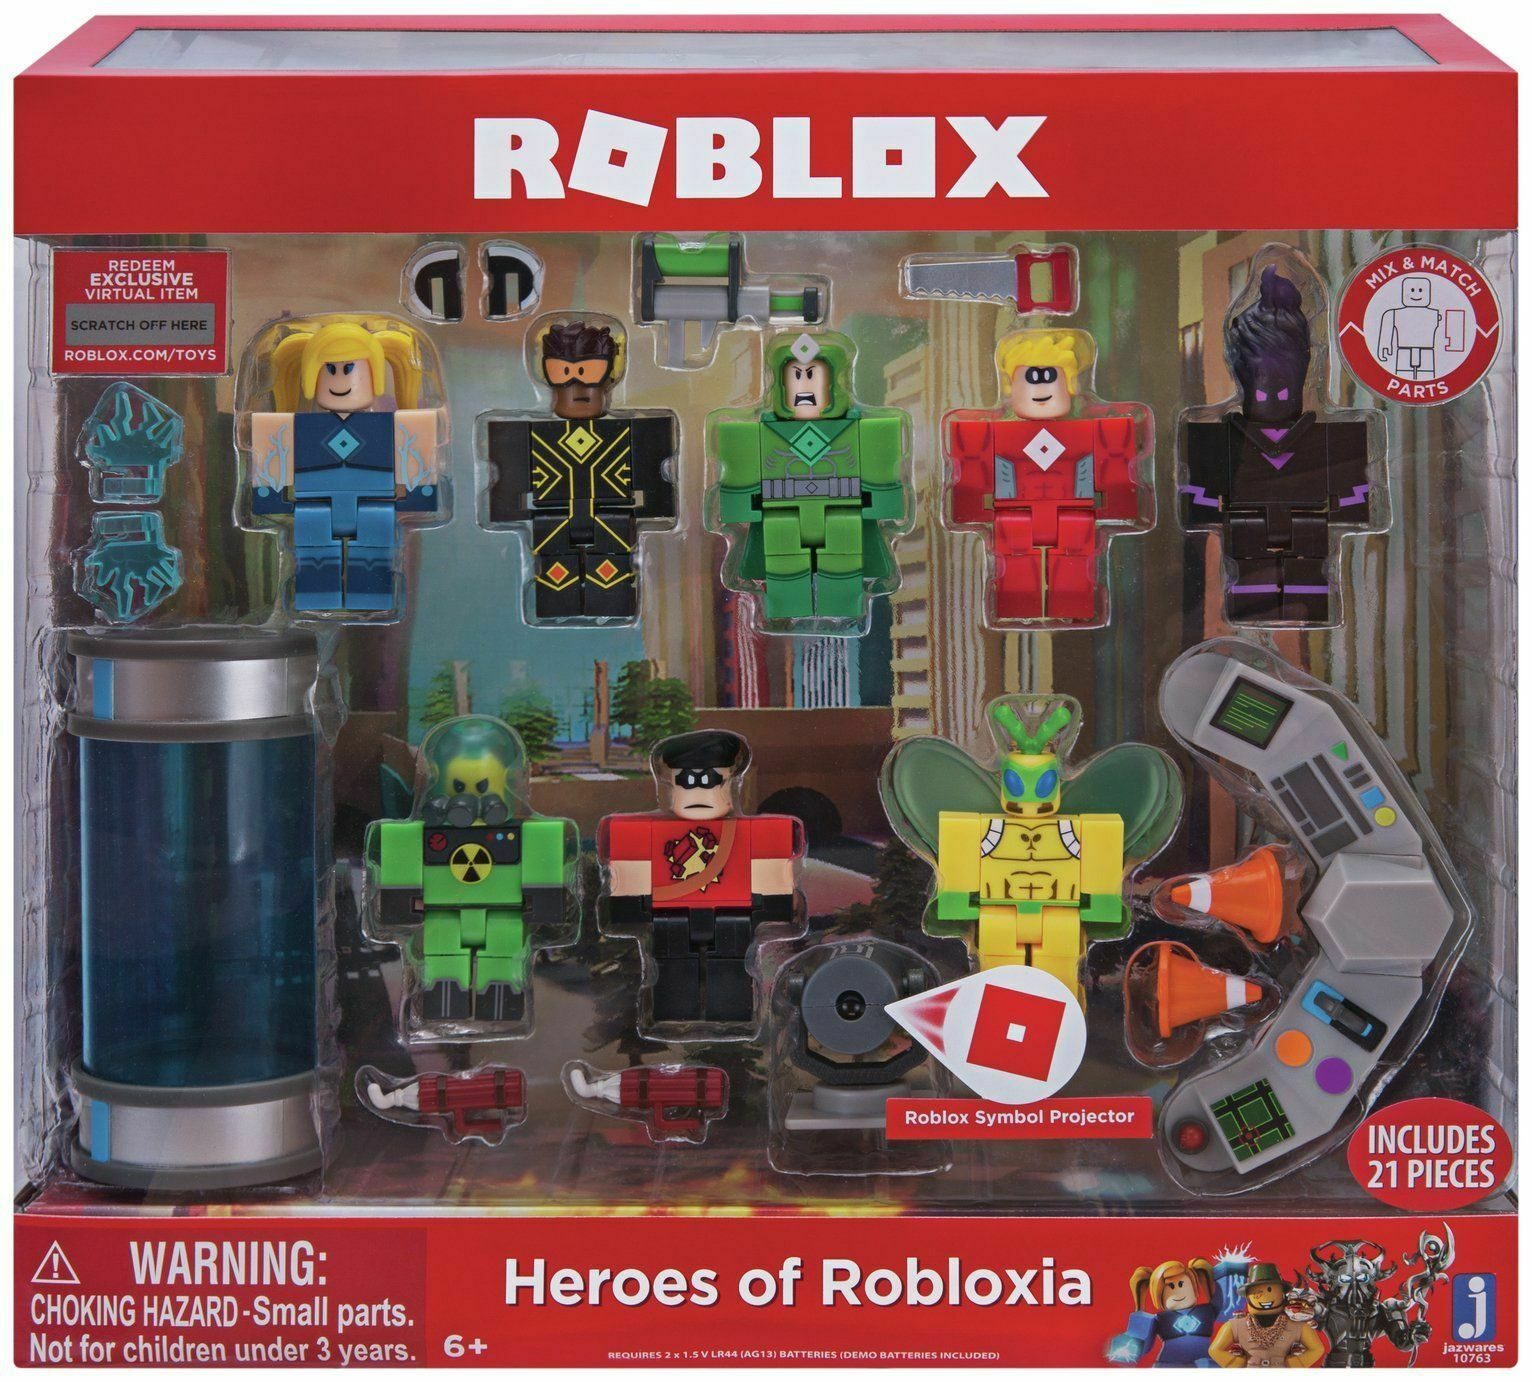 Roblox Heroes of of of Robloxia Feature Playset Series 4 8cc591